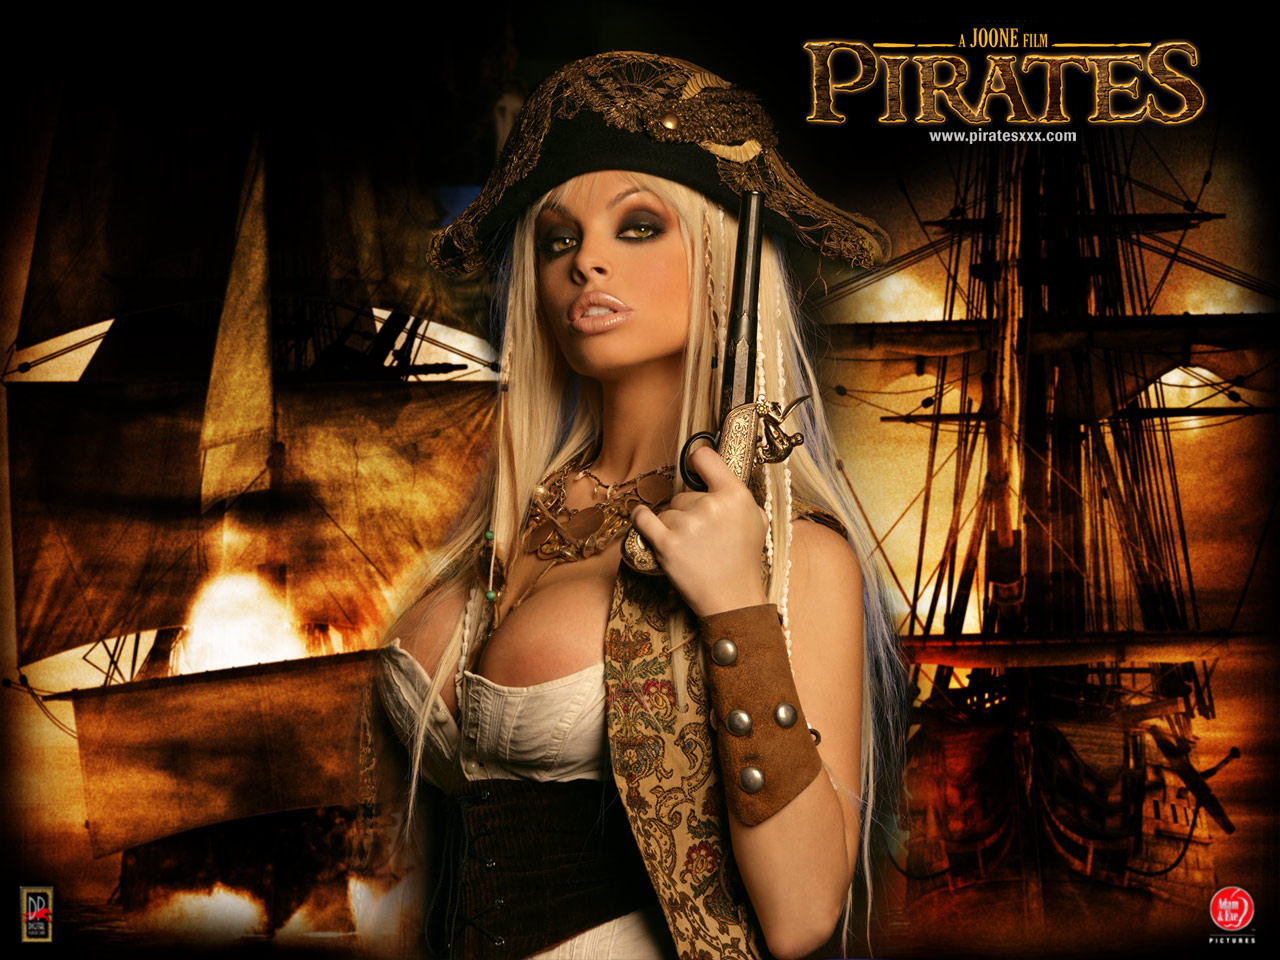 Pirates xxx video on blogspot erotic pic